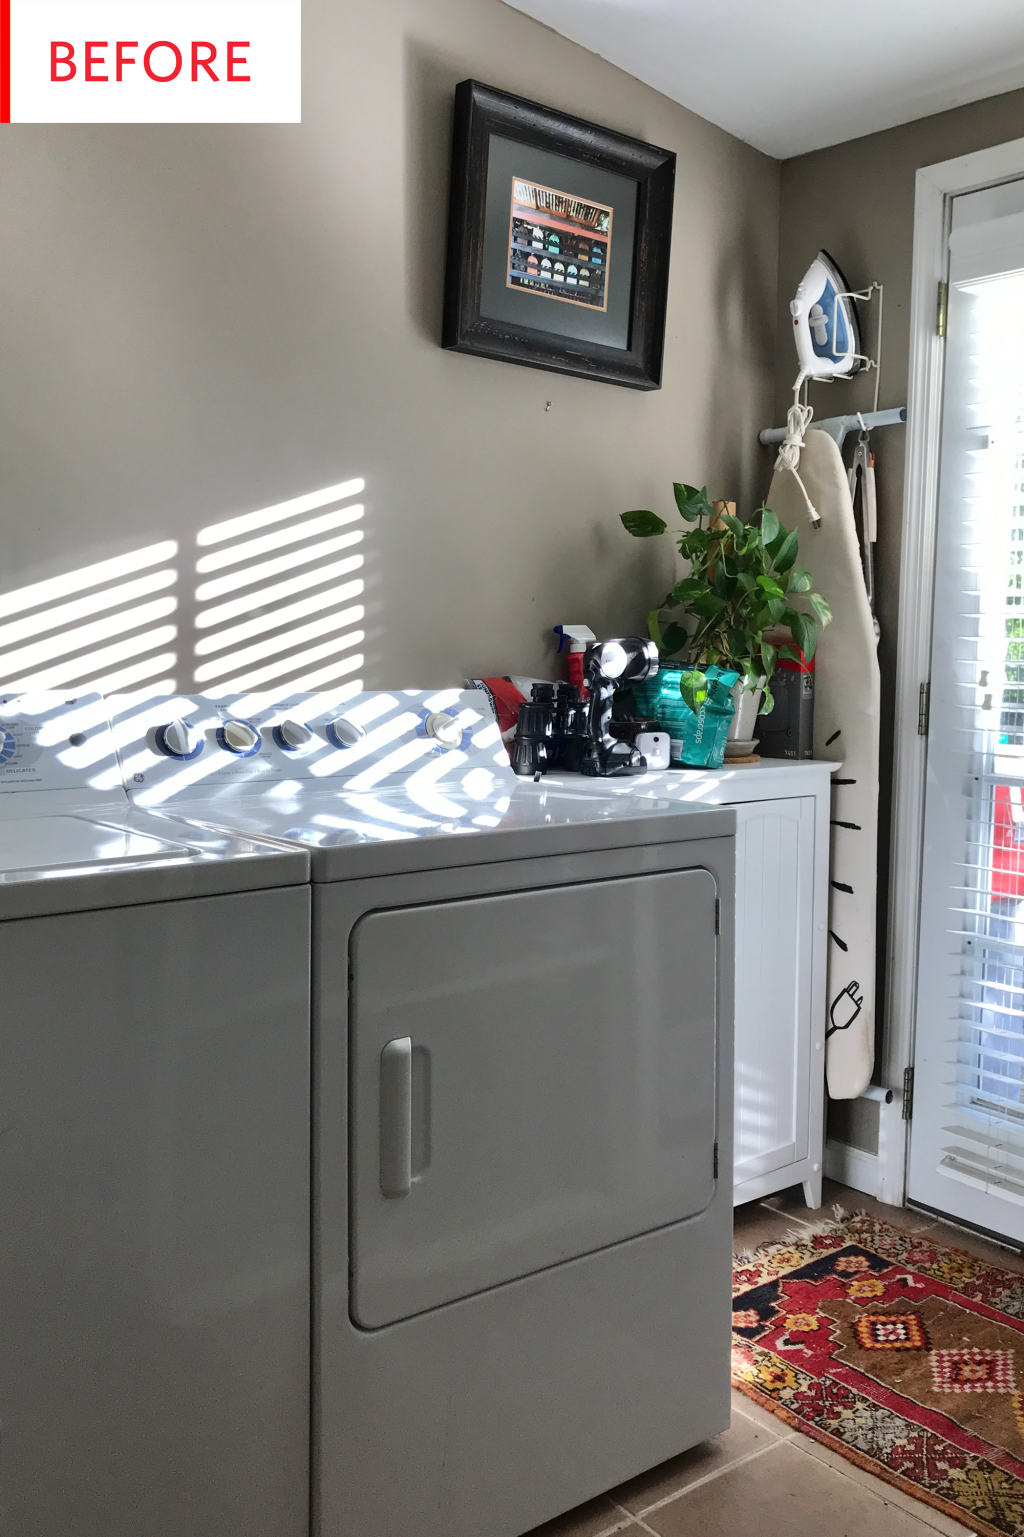 This Laundry Is Now the Exact Opposite of Basic and Boring